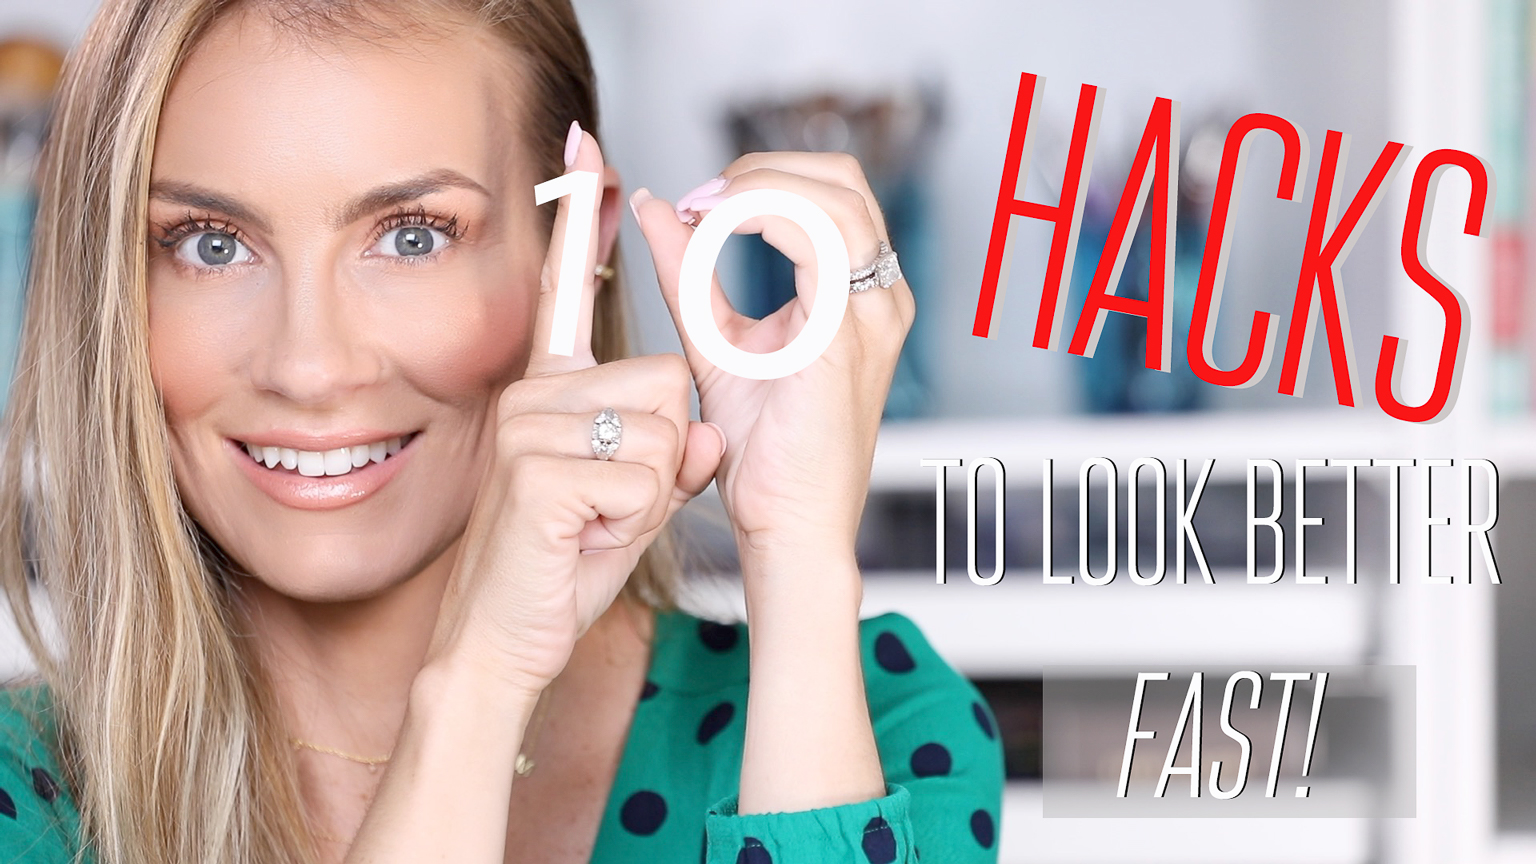 How to Look Good Fast: 10 Hacks